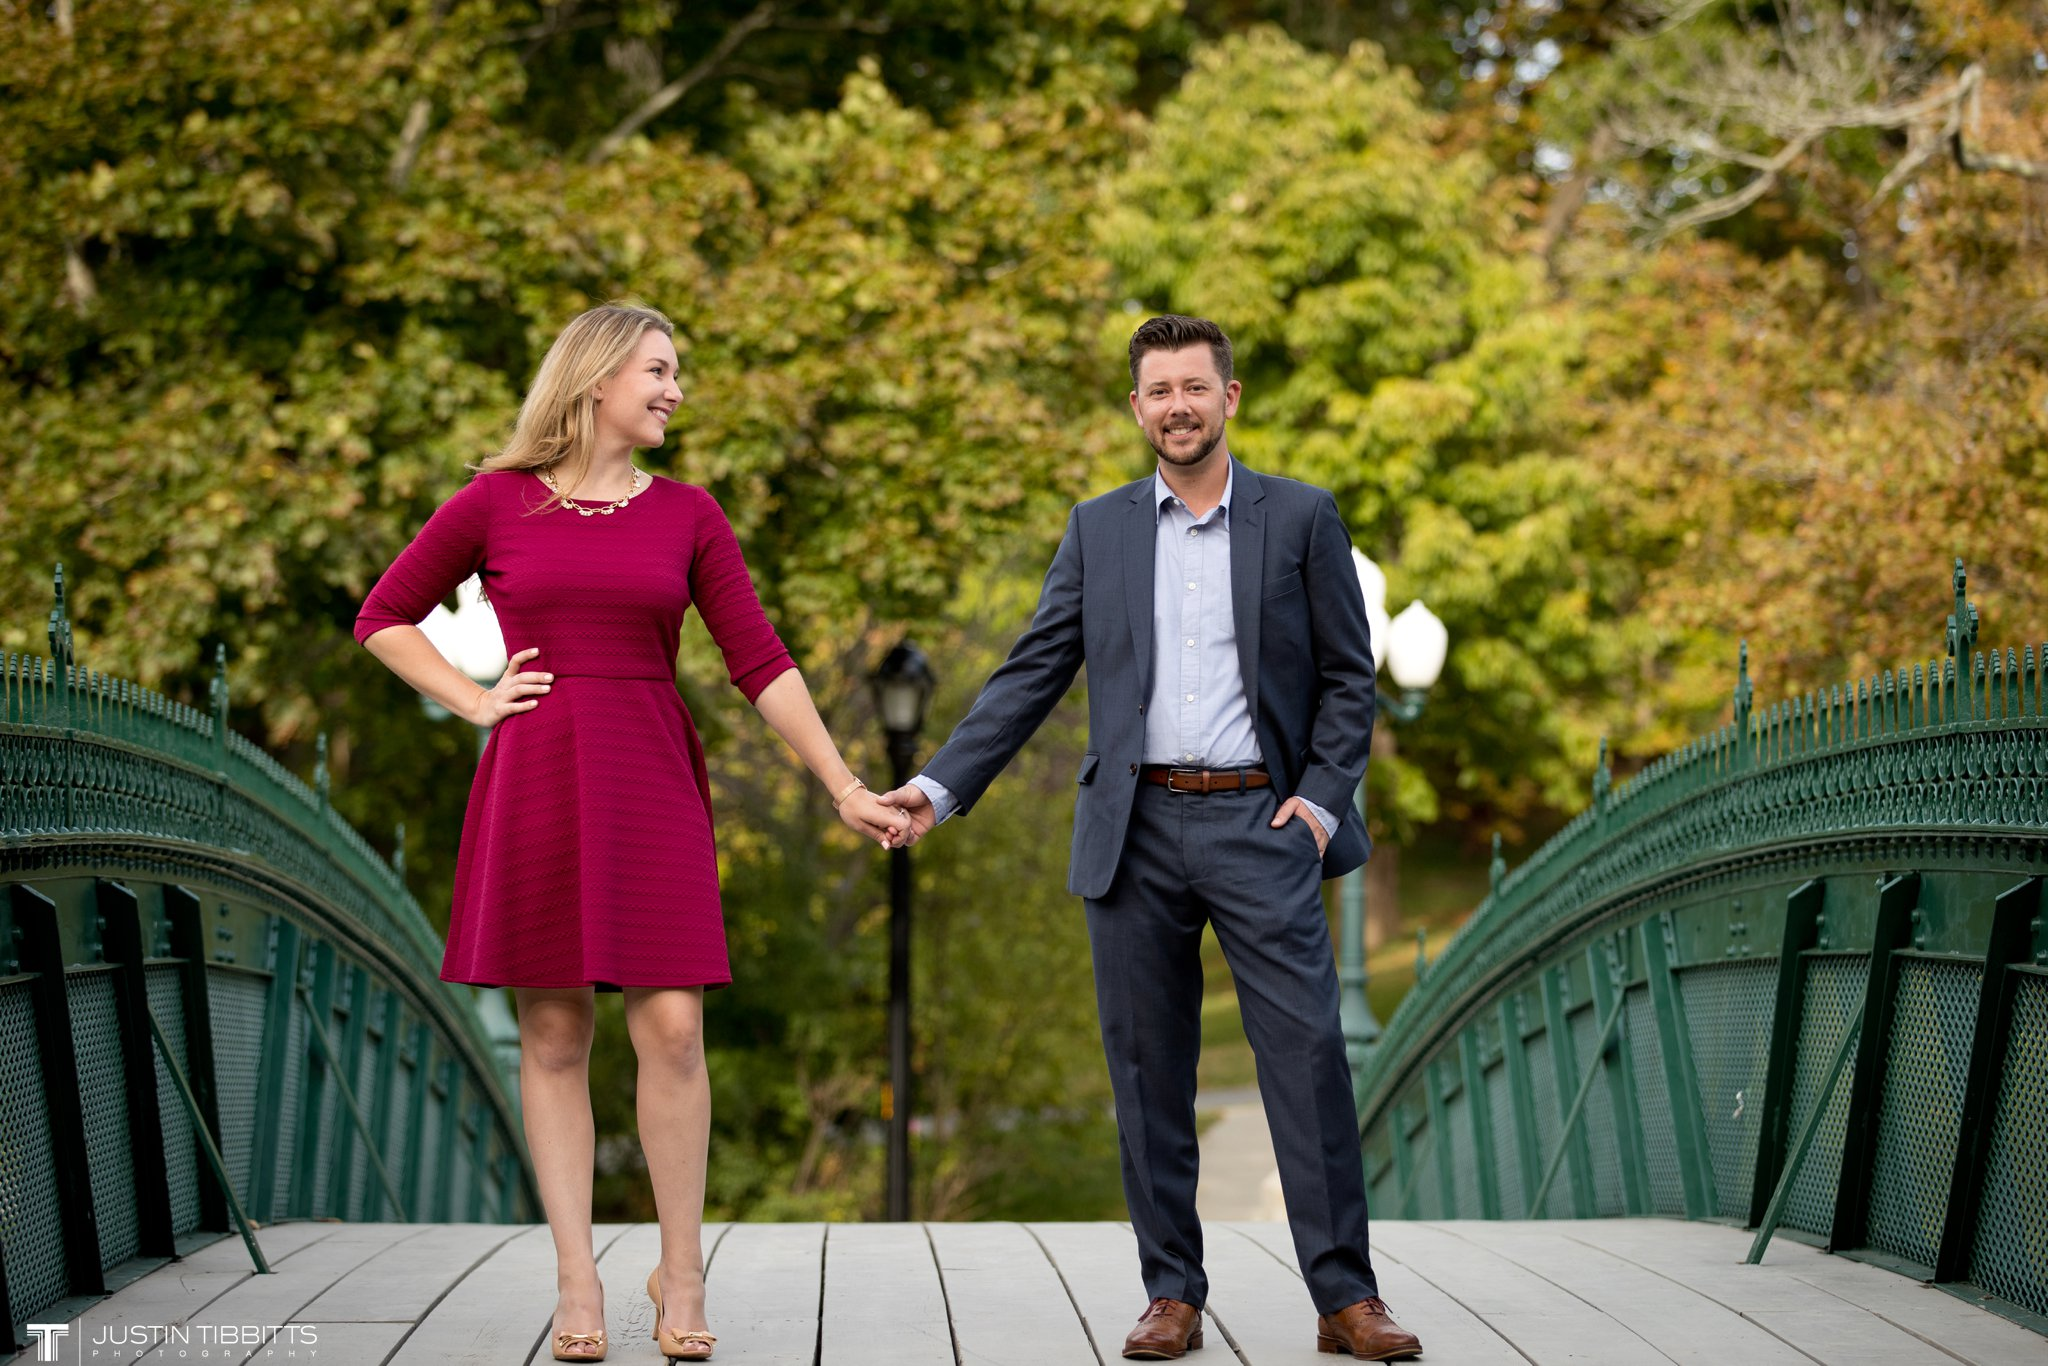 washington-park-albany-ny-engagement-photos-with-andrea-and-dan_0009